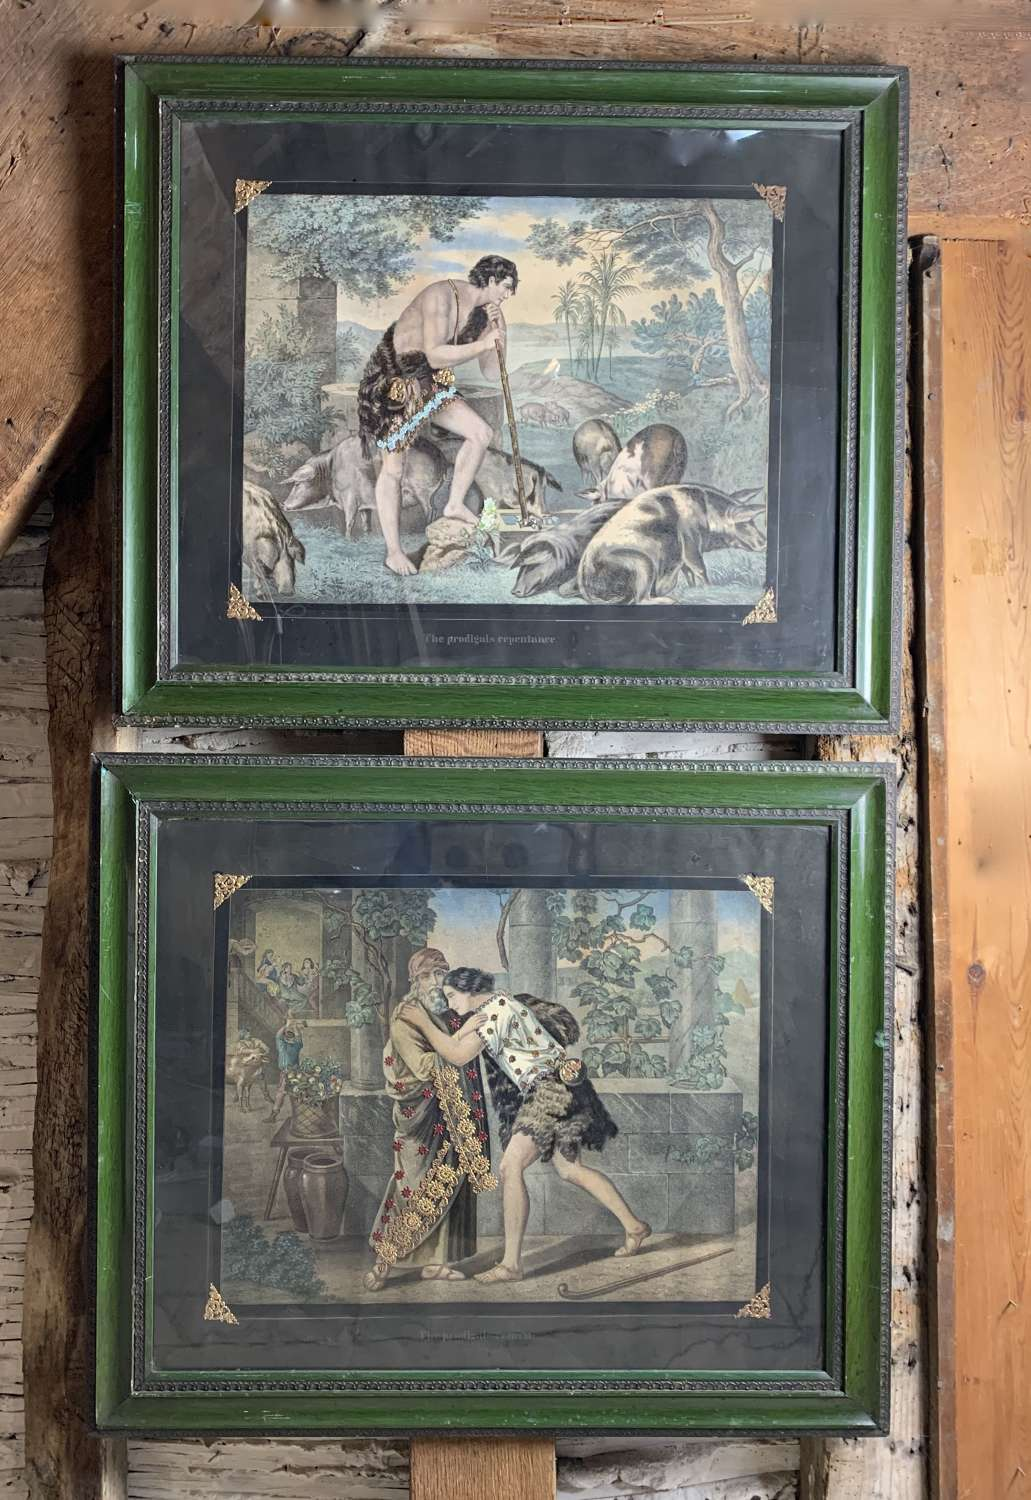 Pair of Victorian Tinsel Embellished Mezzotints - The Prodigal Son